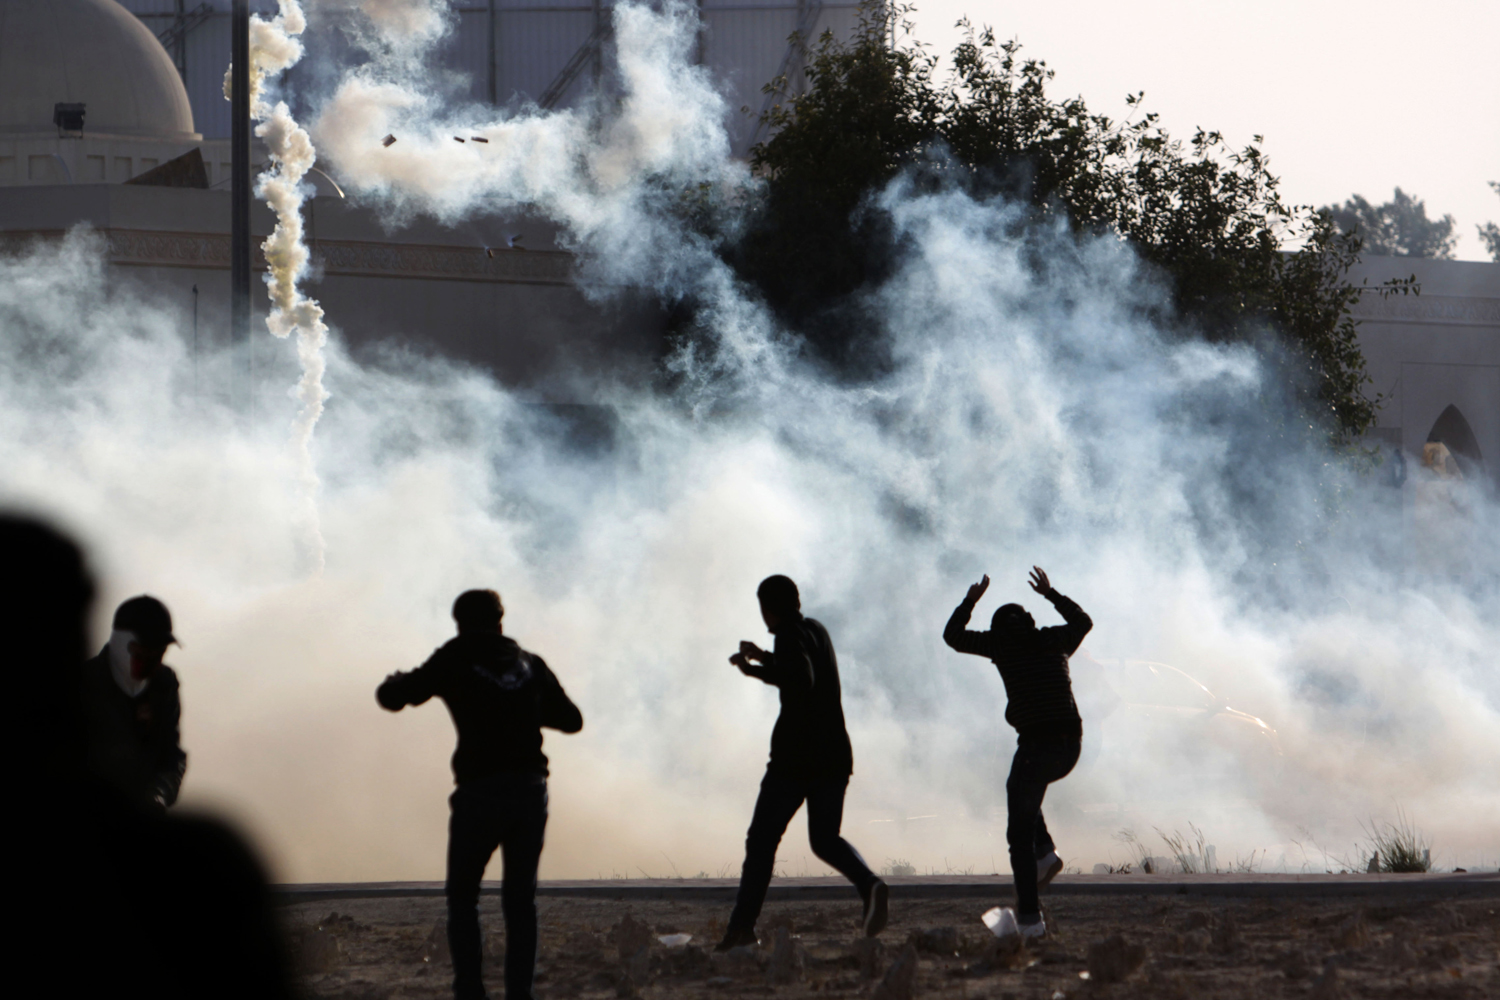 January 21, 2012. Mourners react to tear gas fired by riot police in the Muharraq, Bahrain, cemetery during the politically charged funeral of Yousif Mowali, 24. Authorities say Mowali drowned. His family and opposition human rights activists say relatives searching for him had been told by police he was in custody and that his body showed burns and bruises consistent with torture.